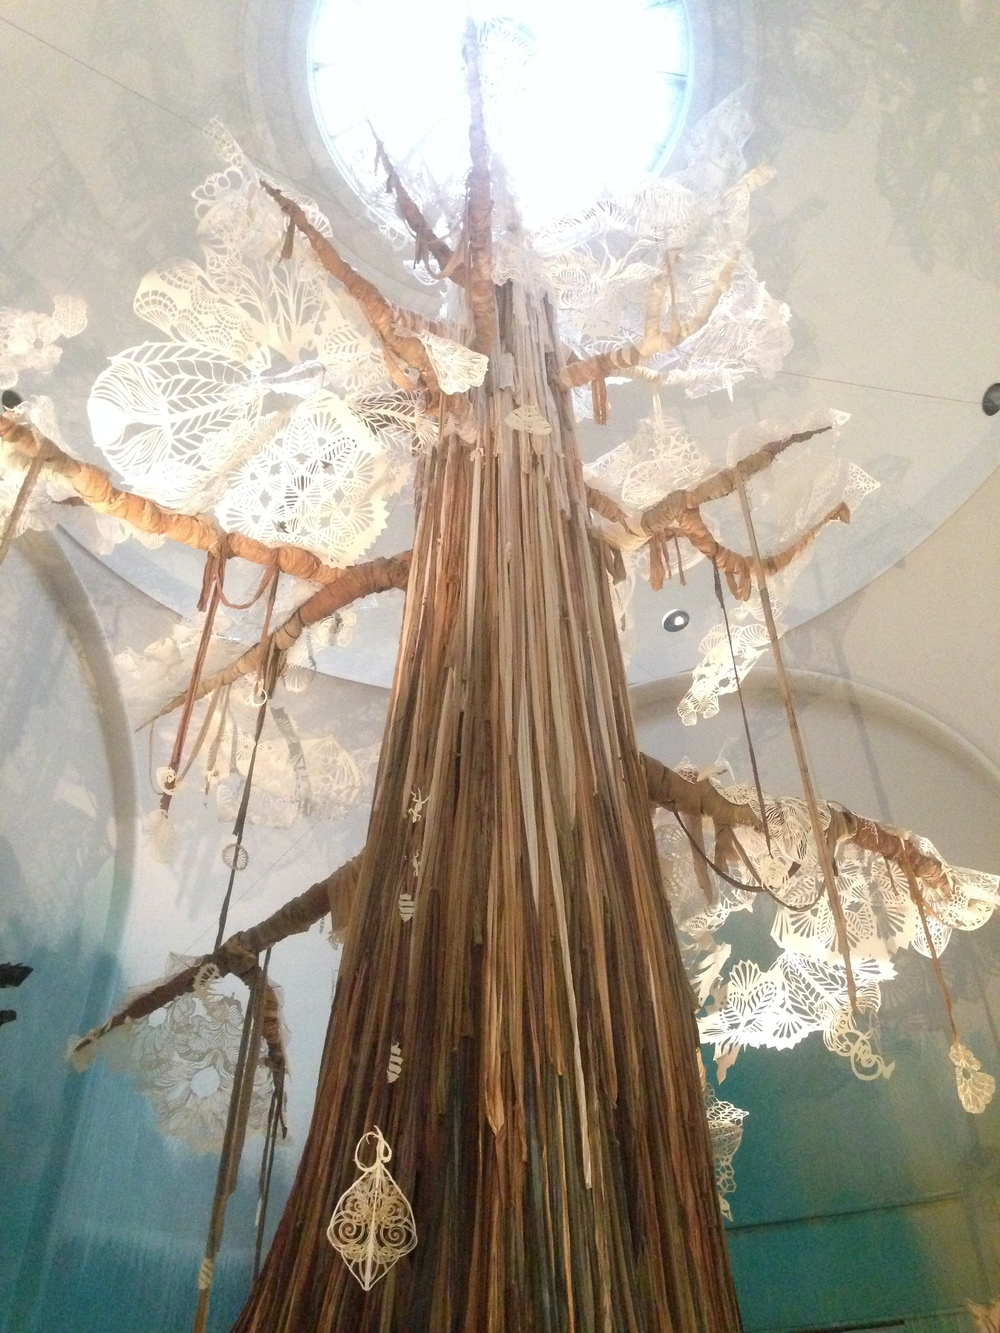 RAG INFUSED TREE TRUNK WITH REFLECTED FORMS BY SWOON